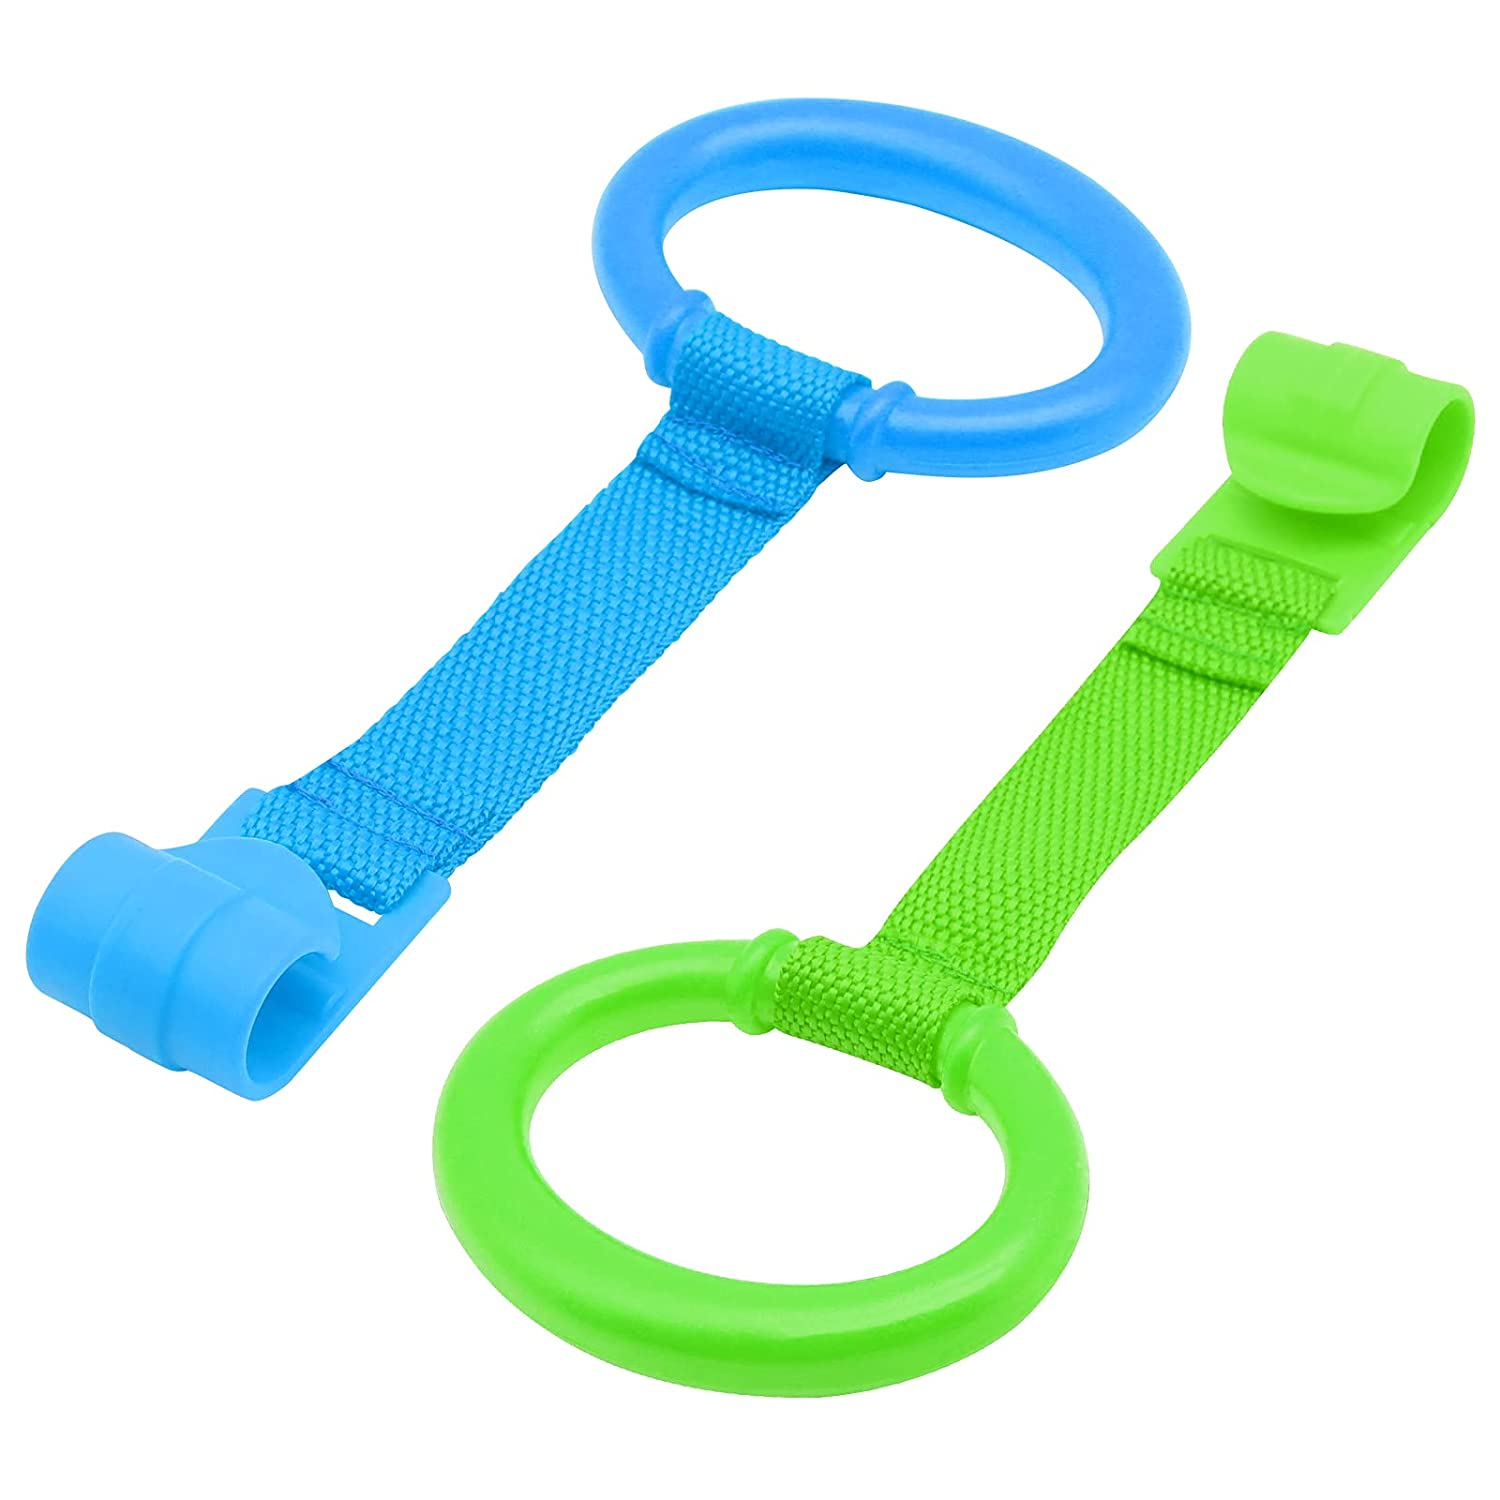 KALAMANDA 2 Pack Baby Crib Pull Ring, Playpen Pull Up Ring, Safety Stand up Ring, Walking Assistant Infant Toddler Kids Children Walking Training Tool(Blue and Green)